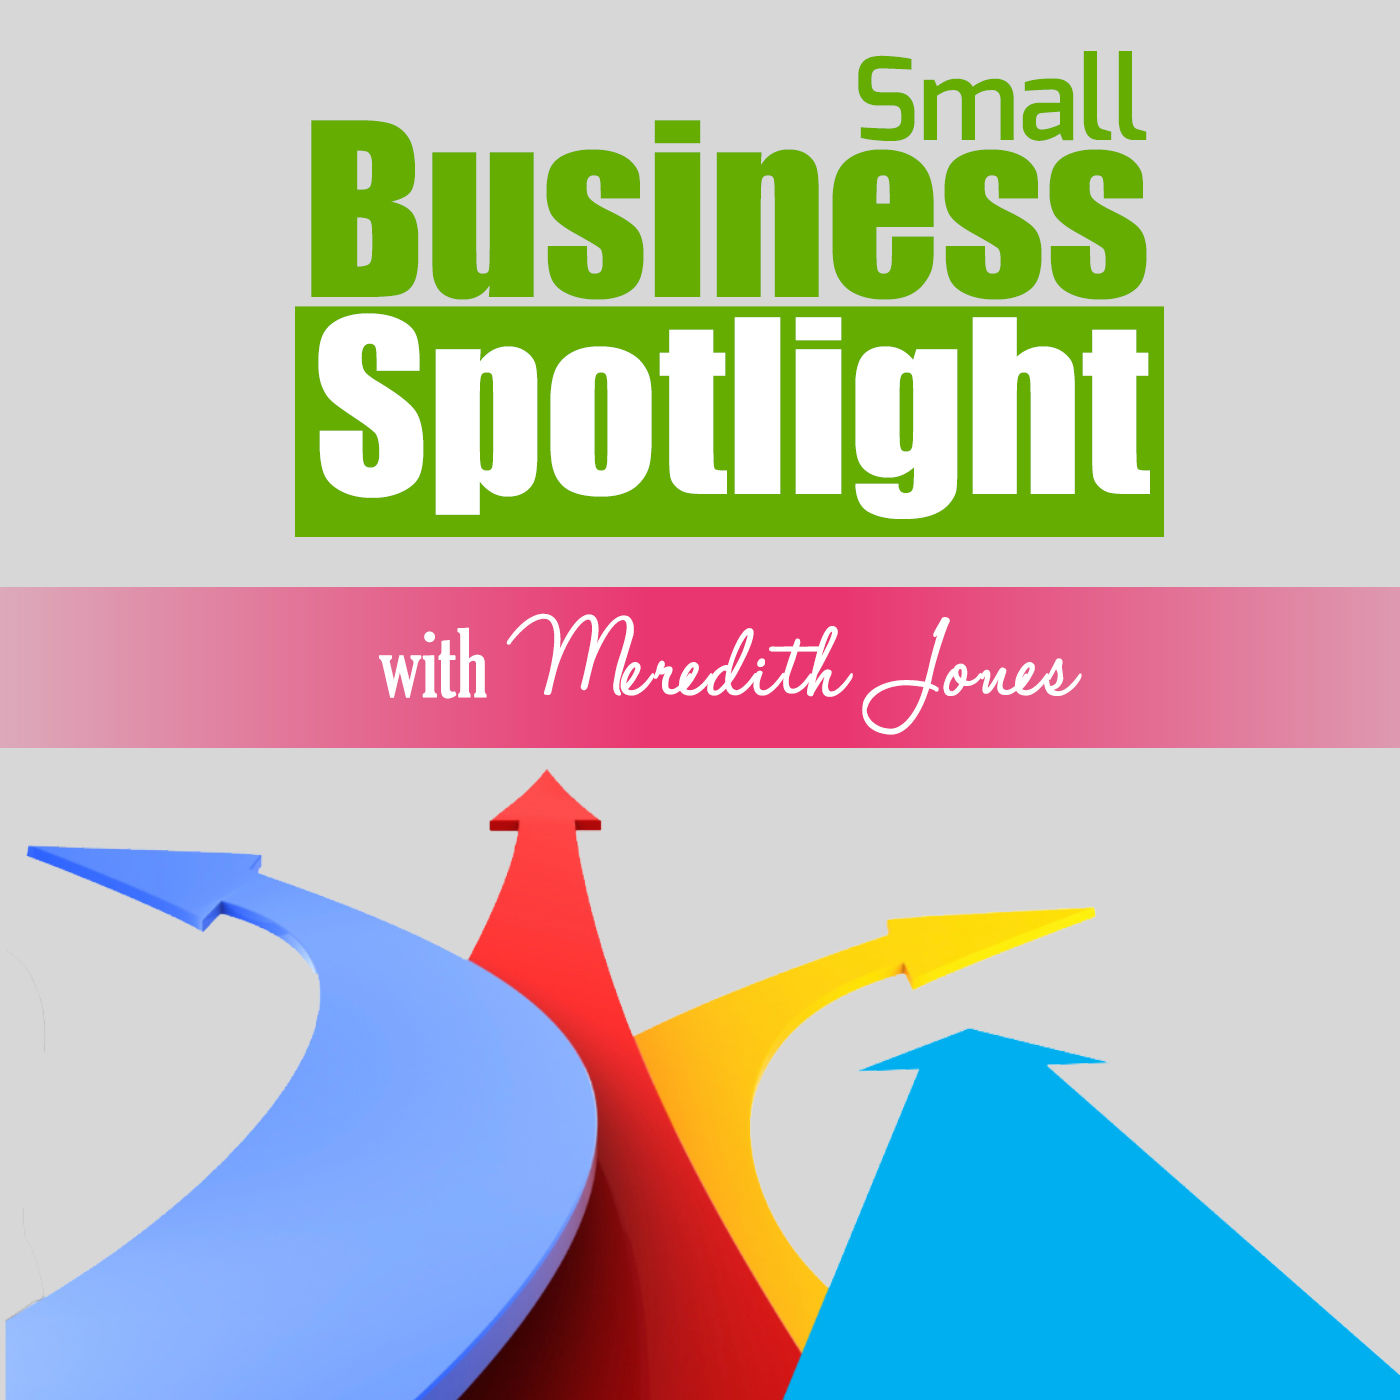 Small Business Spotlight – Meredith J – Handcrafted Help For Your Handcrafted Business